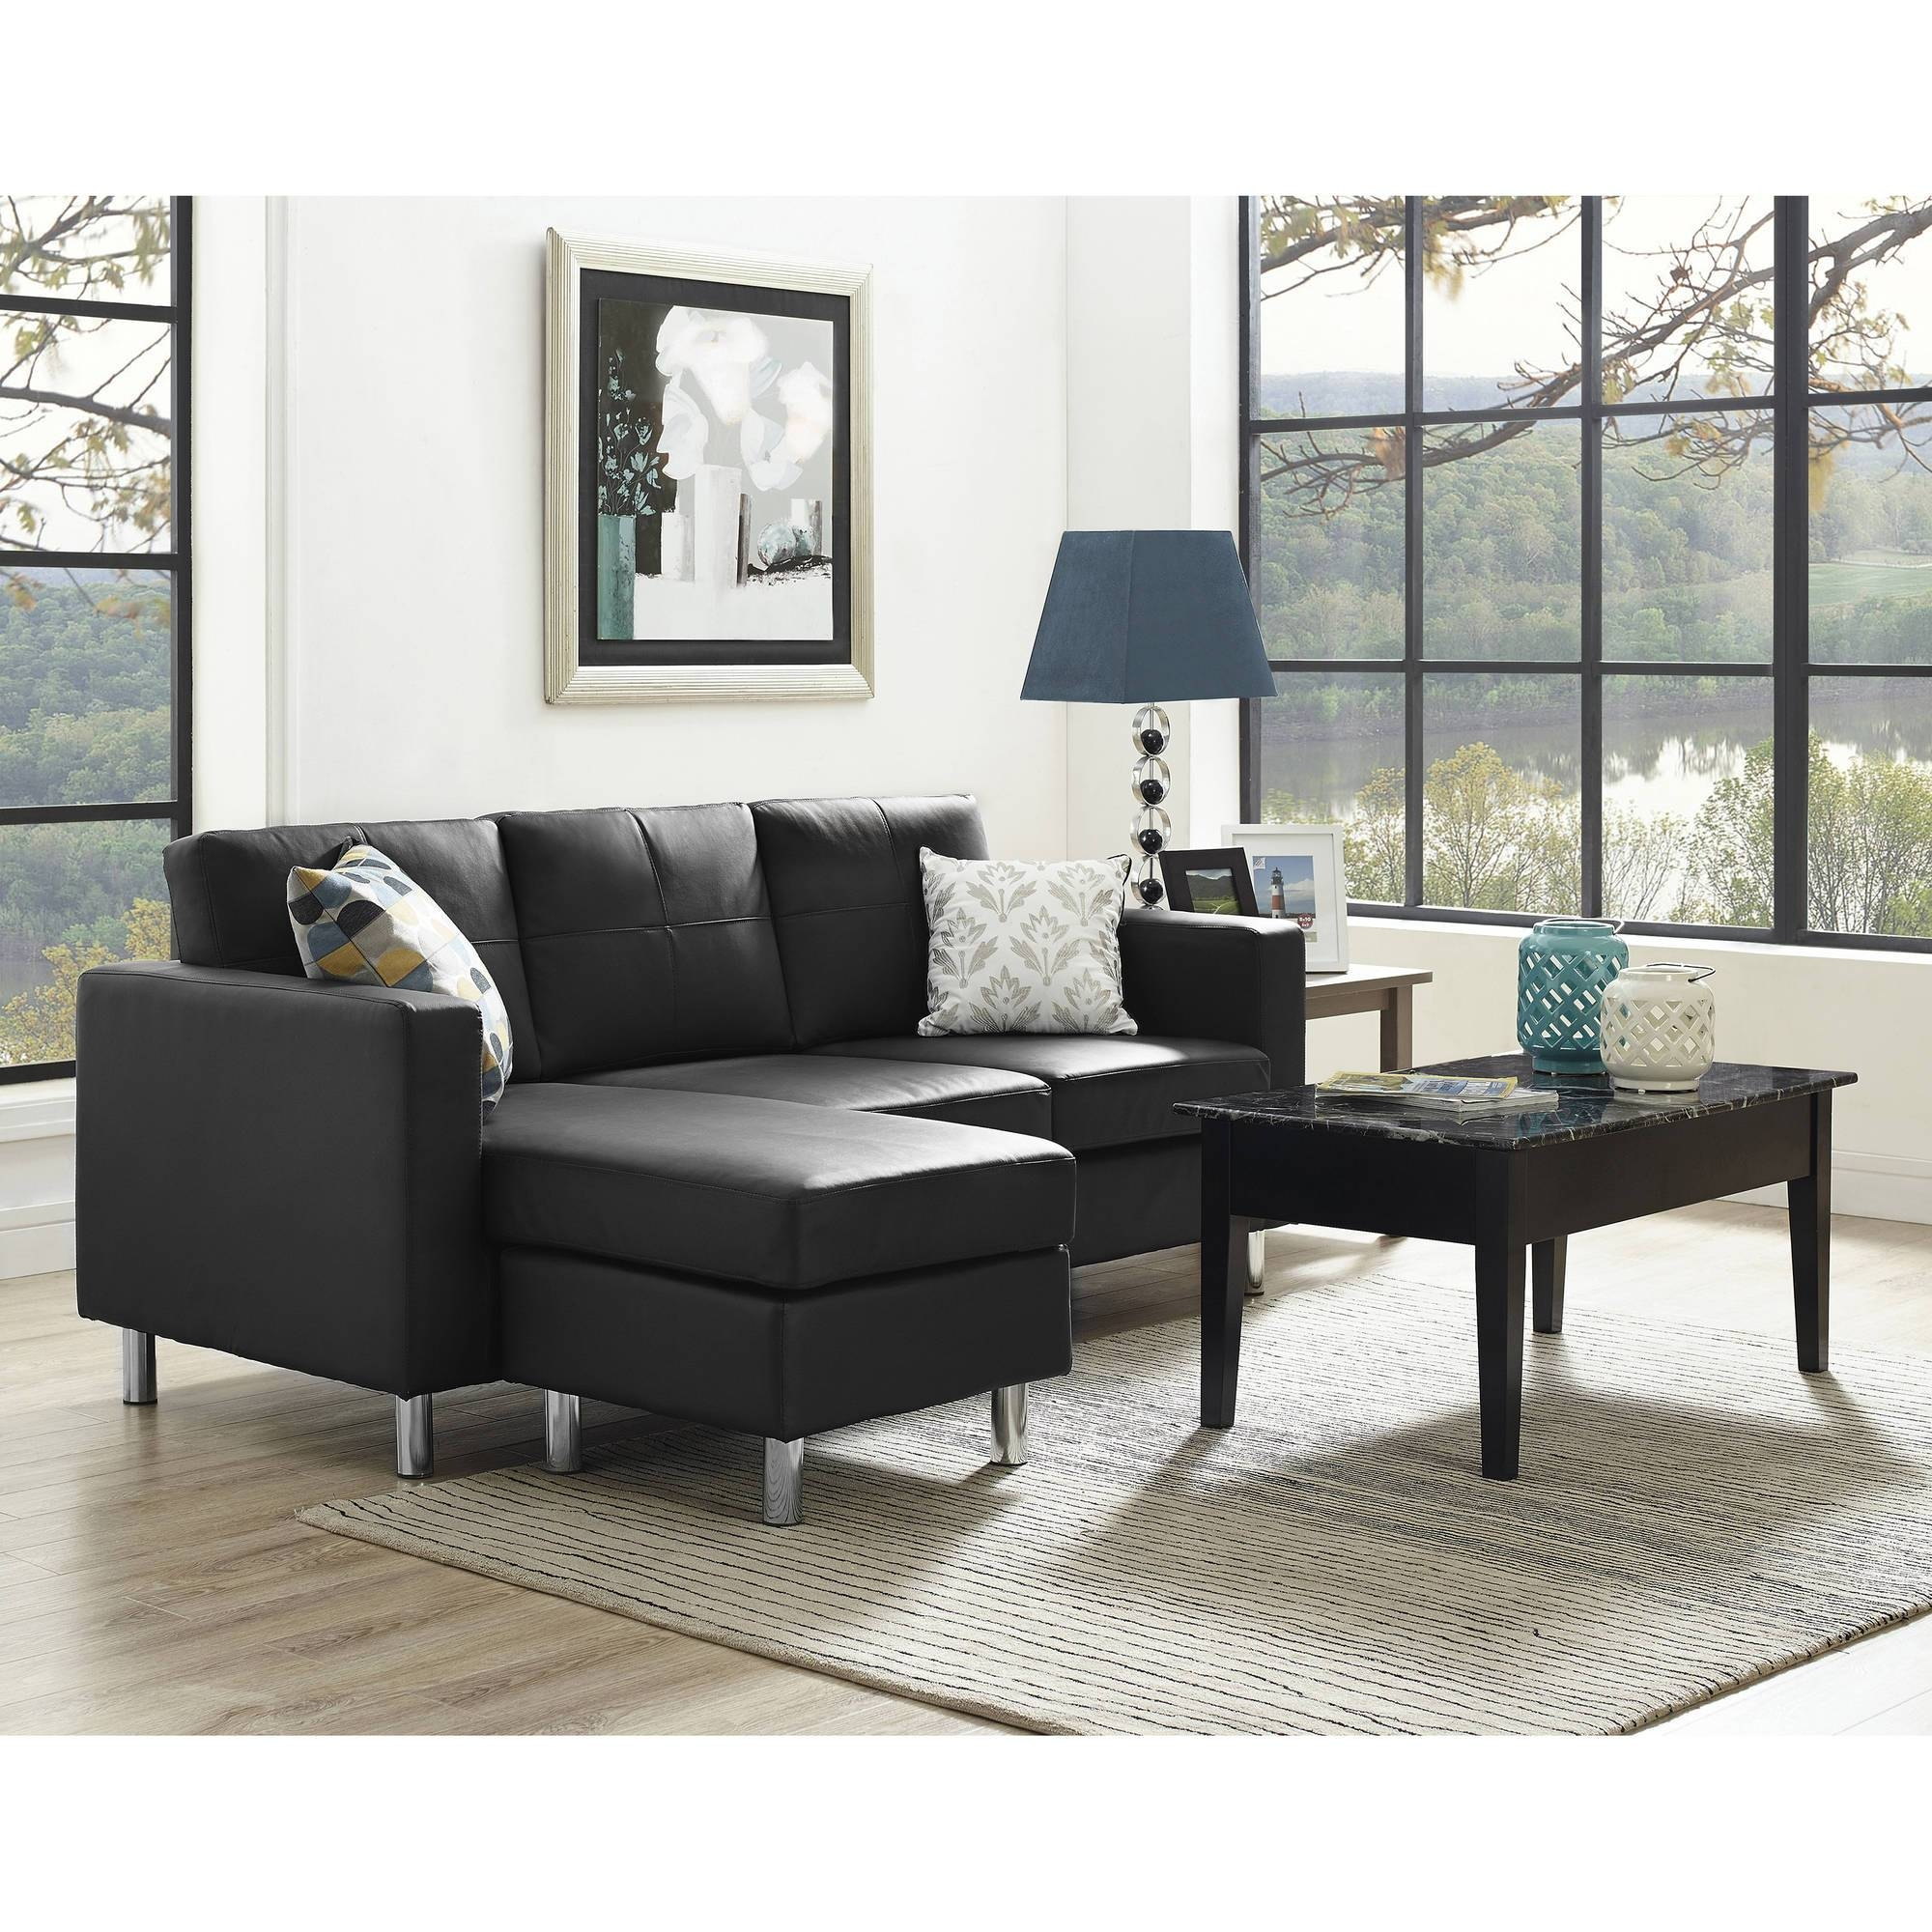 Sectional Sofa For Small Space - Tourdecarroll regarding Bauhaus Furniture Sectional Sofas (Image 10 of 15)